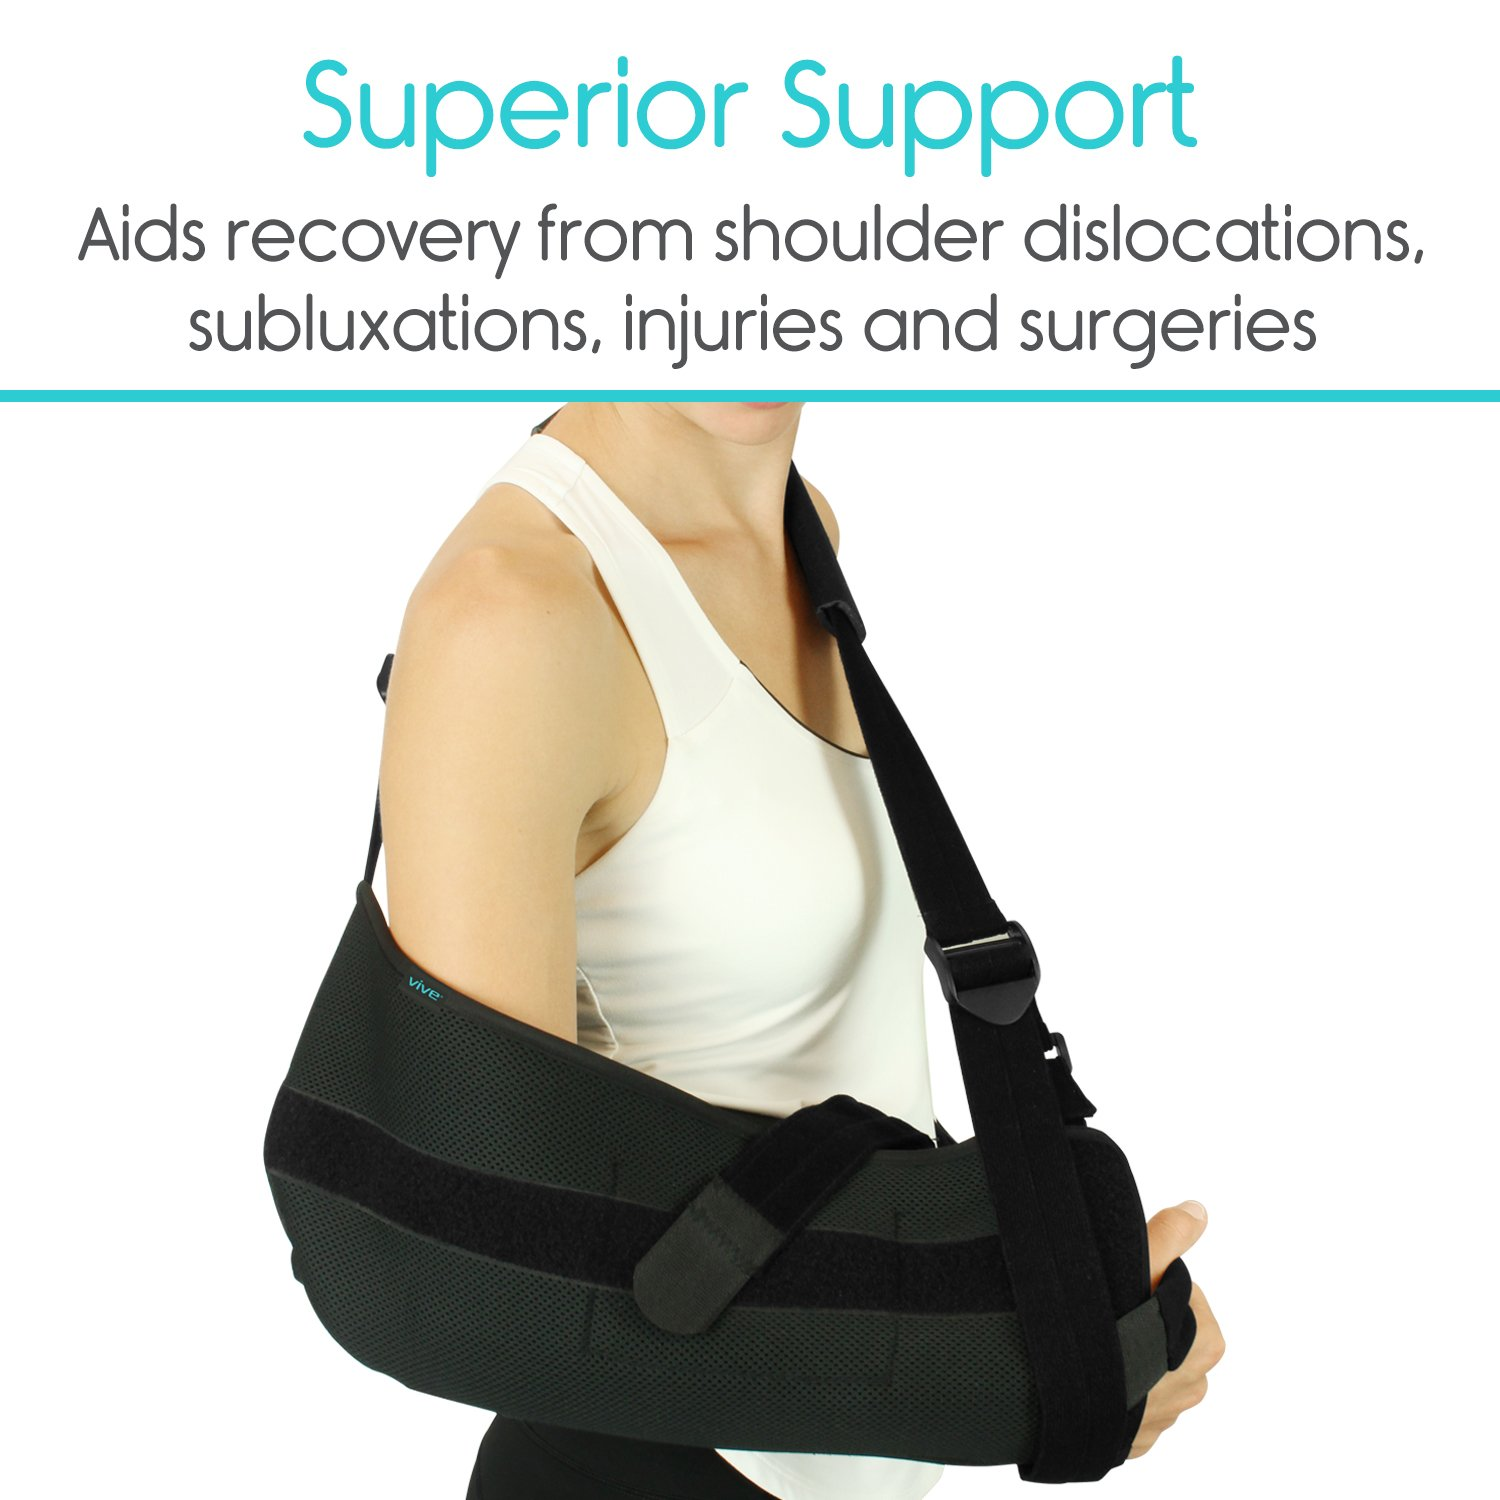 Vive Shoulder Sling - Abduction Immobilizer for Injury Support - Pain Relief Arm Pillow for Rotator Cuff, Sublexion, Surgery, Dislocated, Broken Arm - Brace Includes Pocket Strap, Stress Ball, Wedge by VIVE (Image #5)